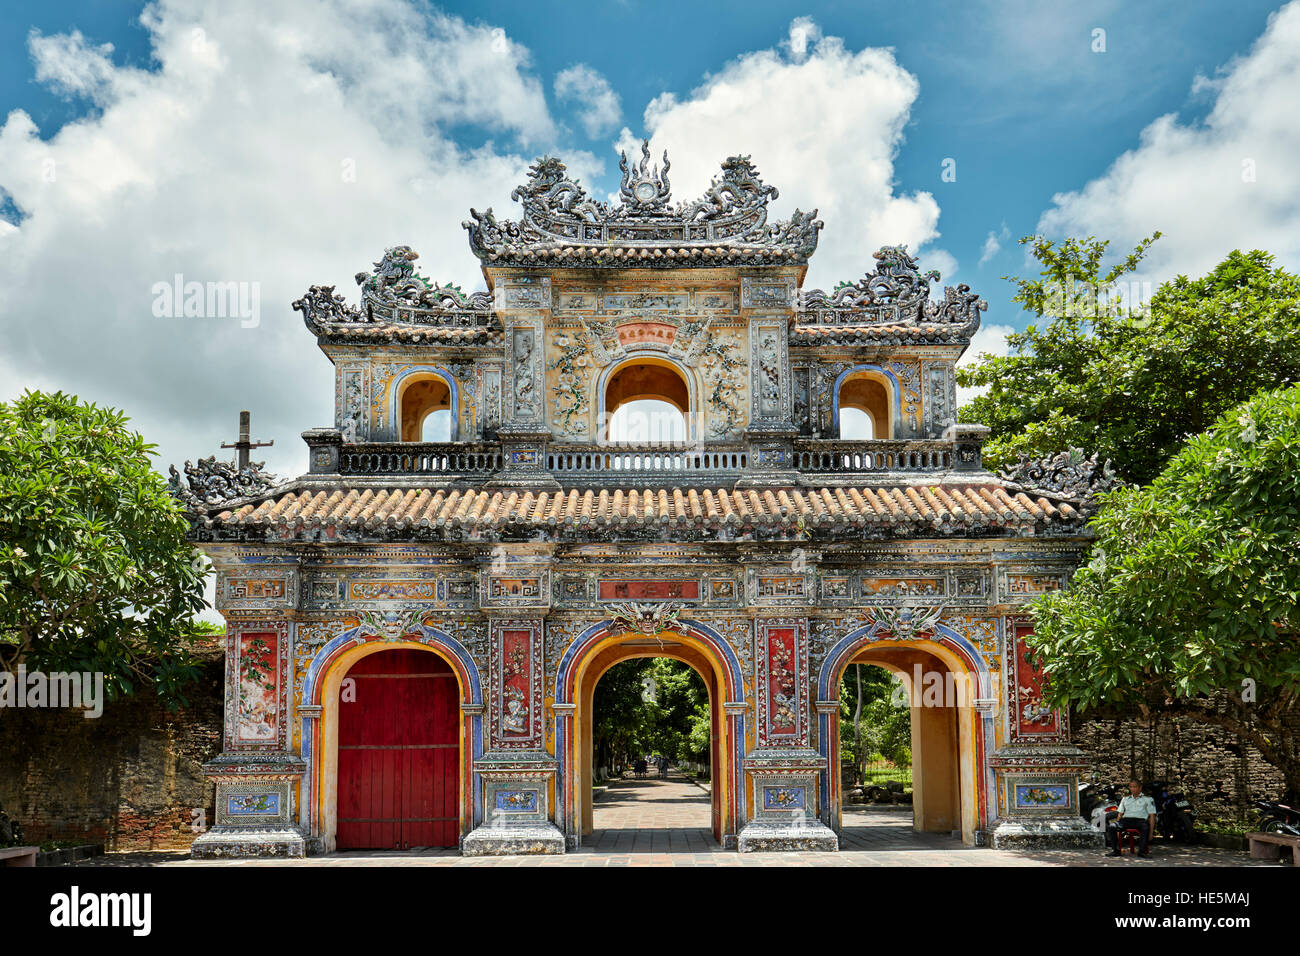 Gate In The Purple Forbidden City Imperial City The Citadel Hue Stock Photo Alamy